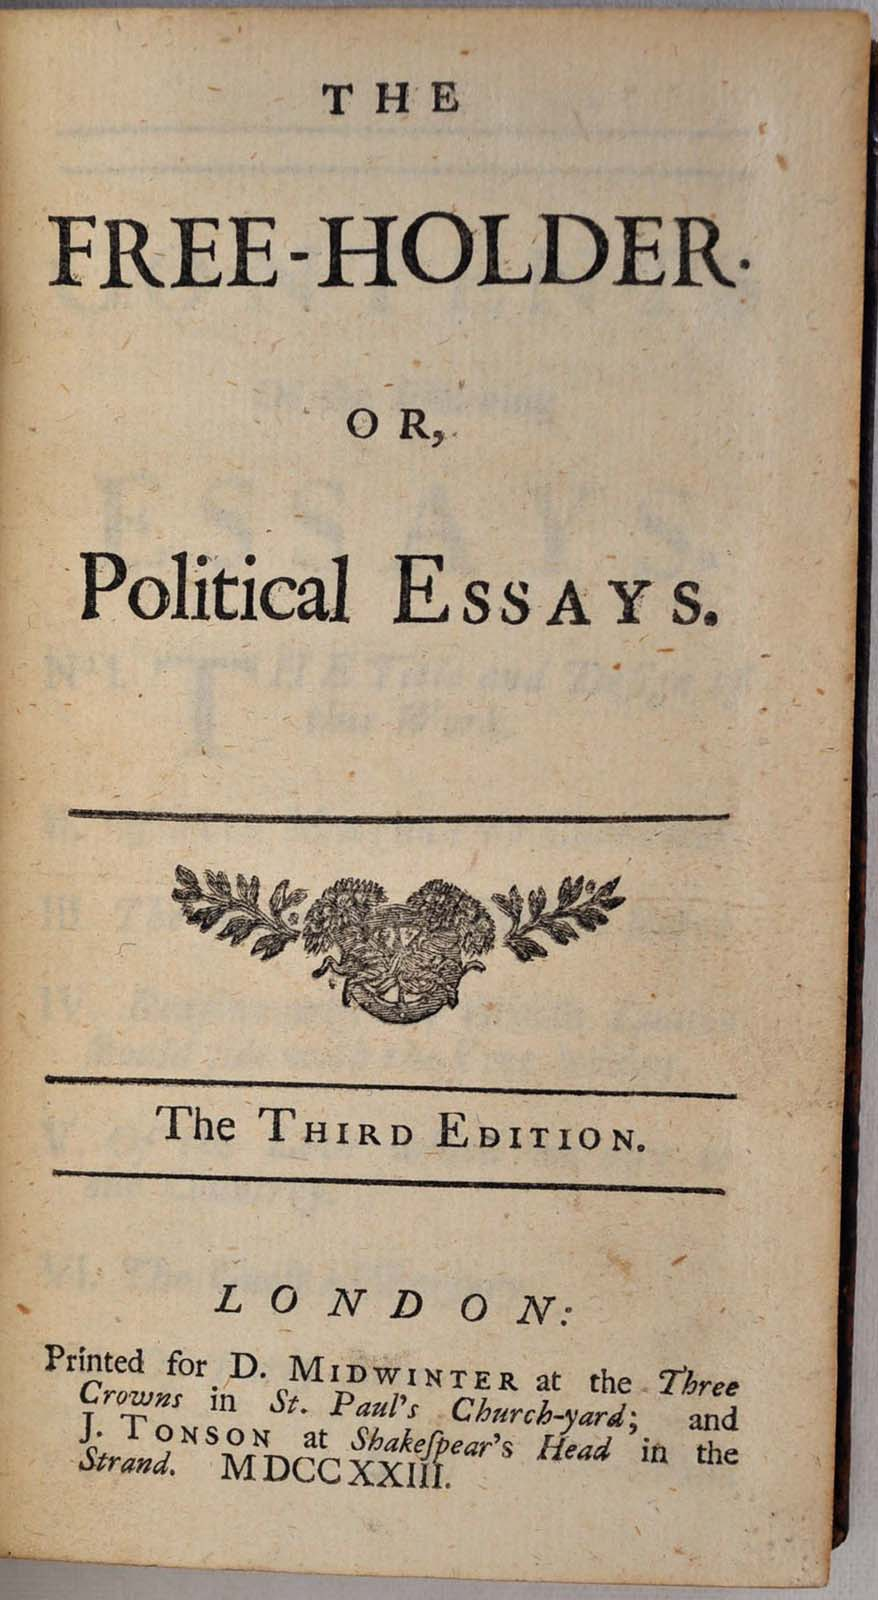 political essays and speeches Resources introduction rhetoric is a subject researched across disciplinary boundaries: history, literature, philosophy, linguistics, political science.